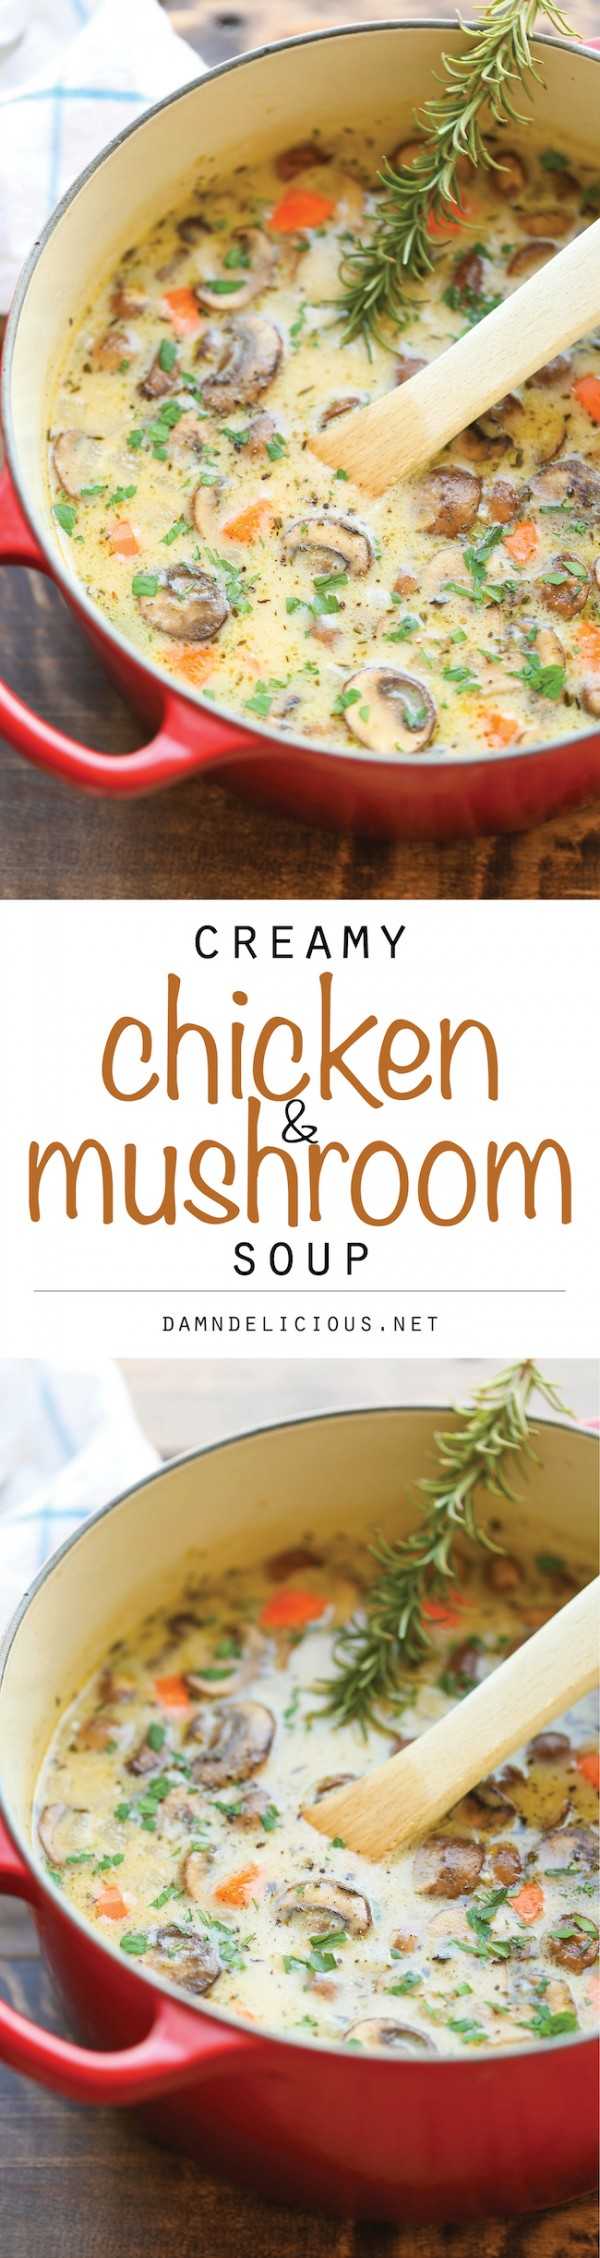 Get the recipe Creamy Chicken and Mushroom Soup @recipes_to_go